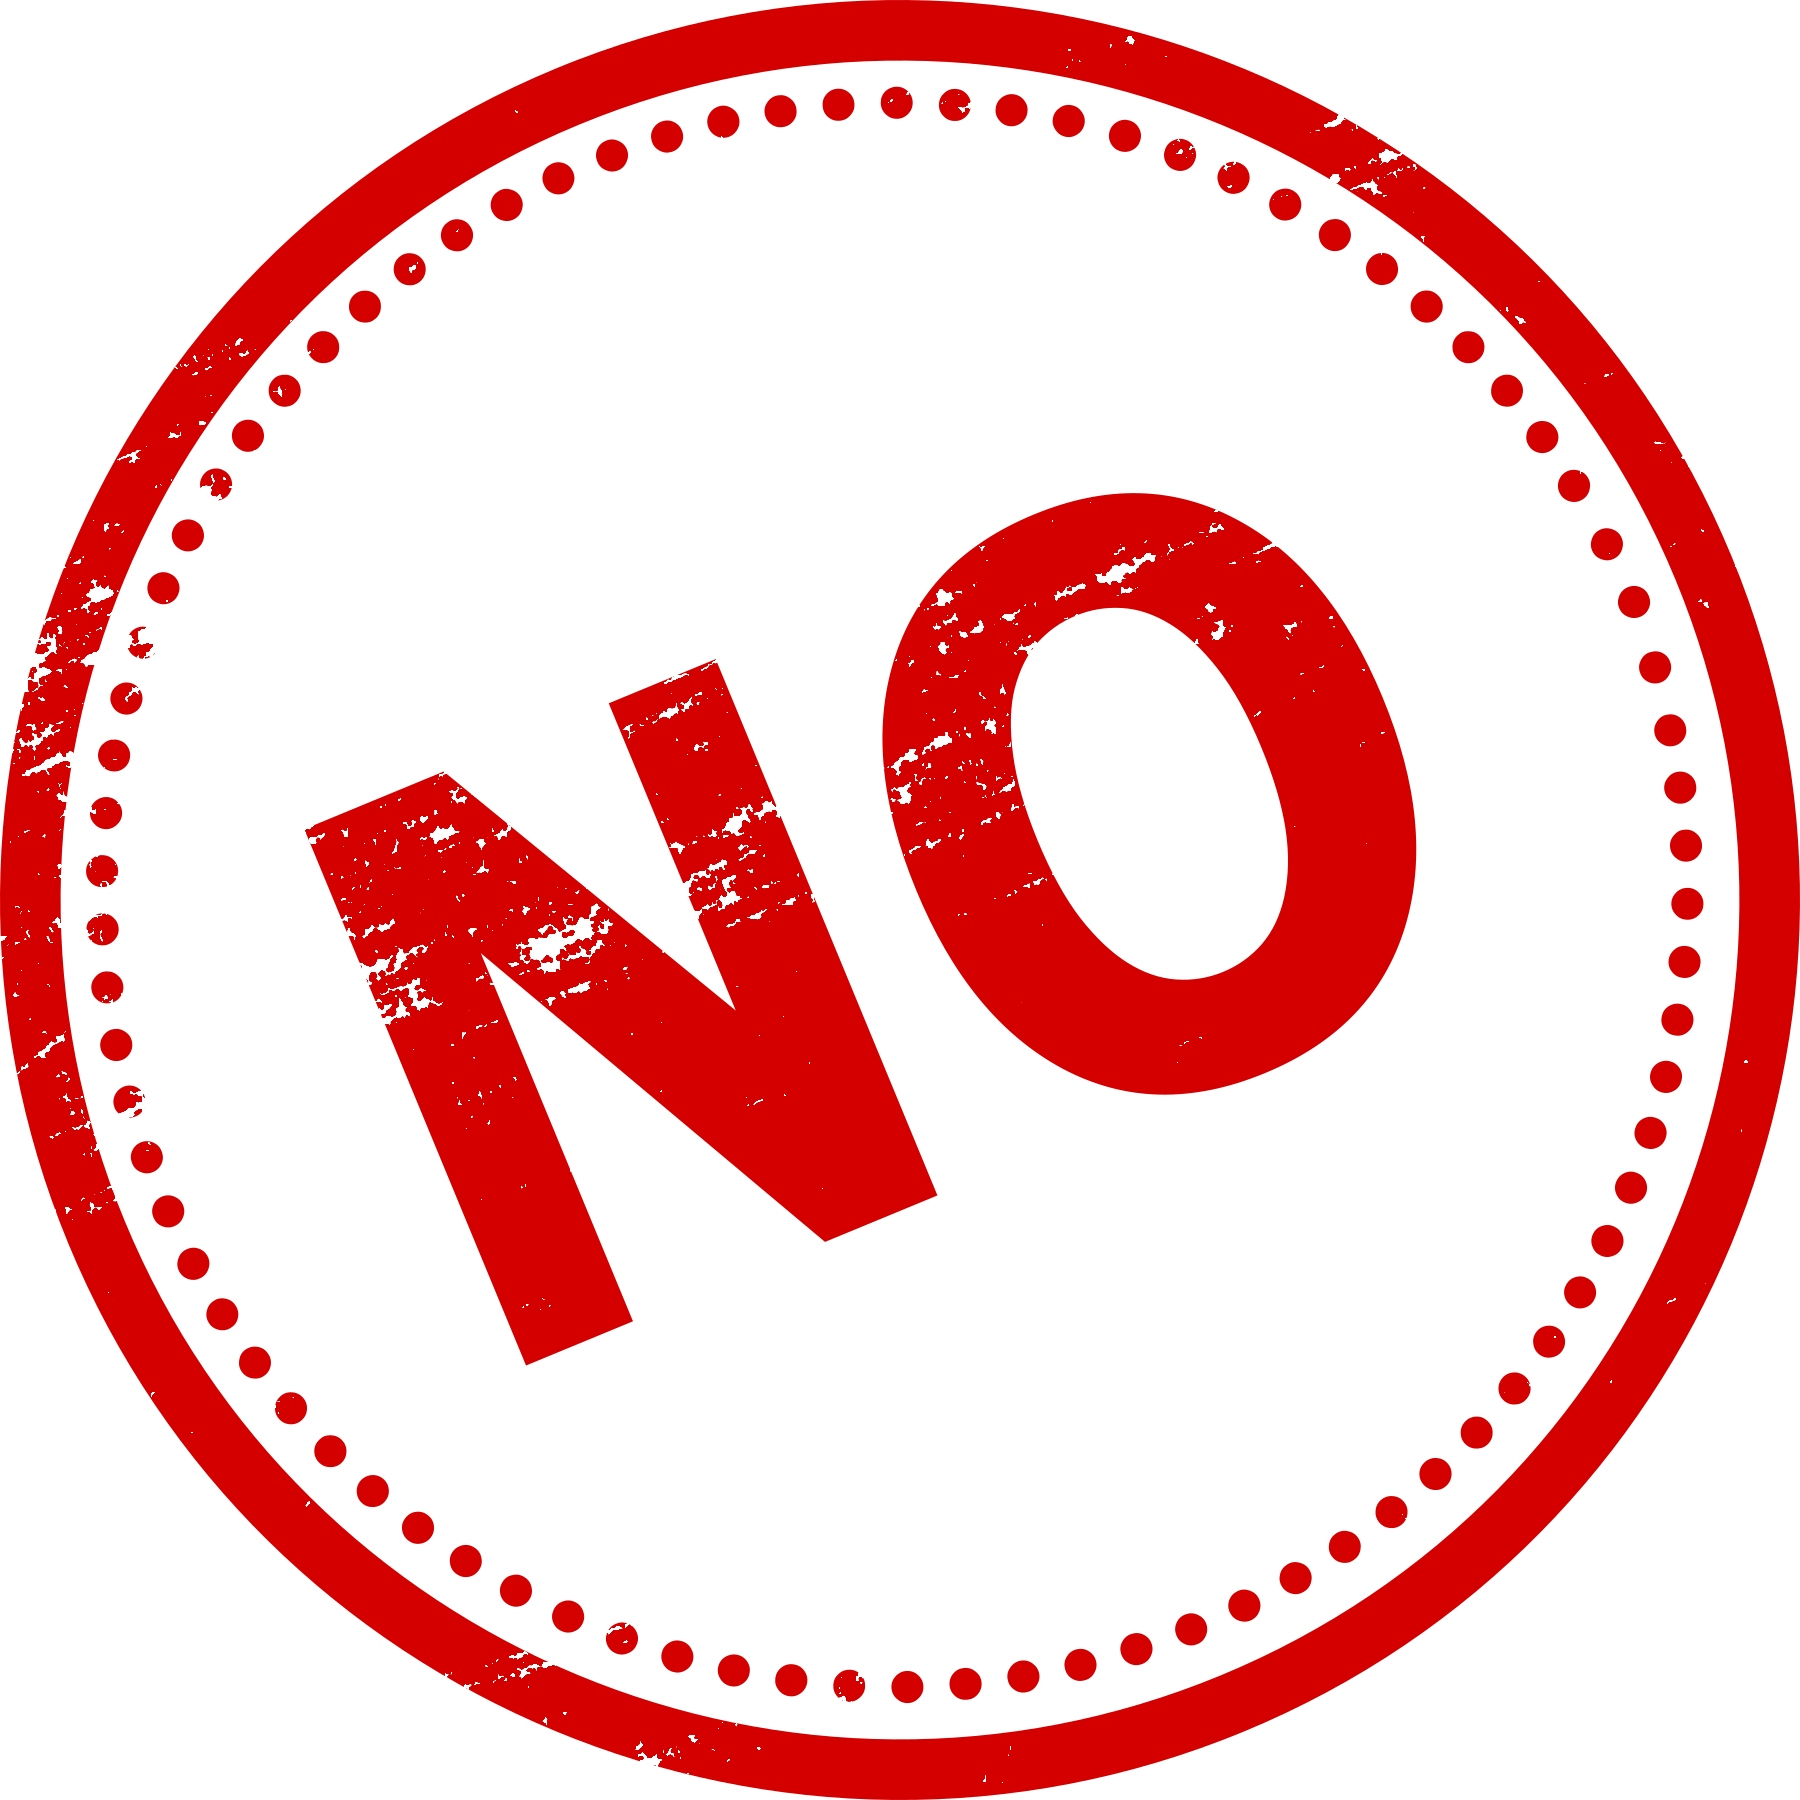 Red no png. Yes stamp transparent